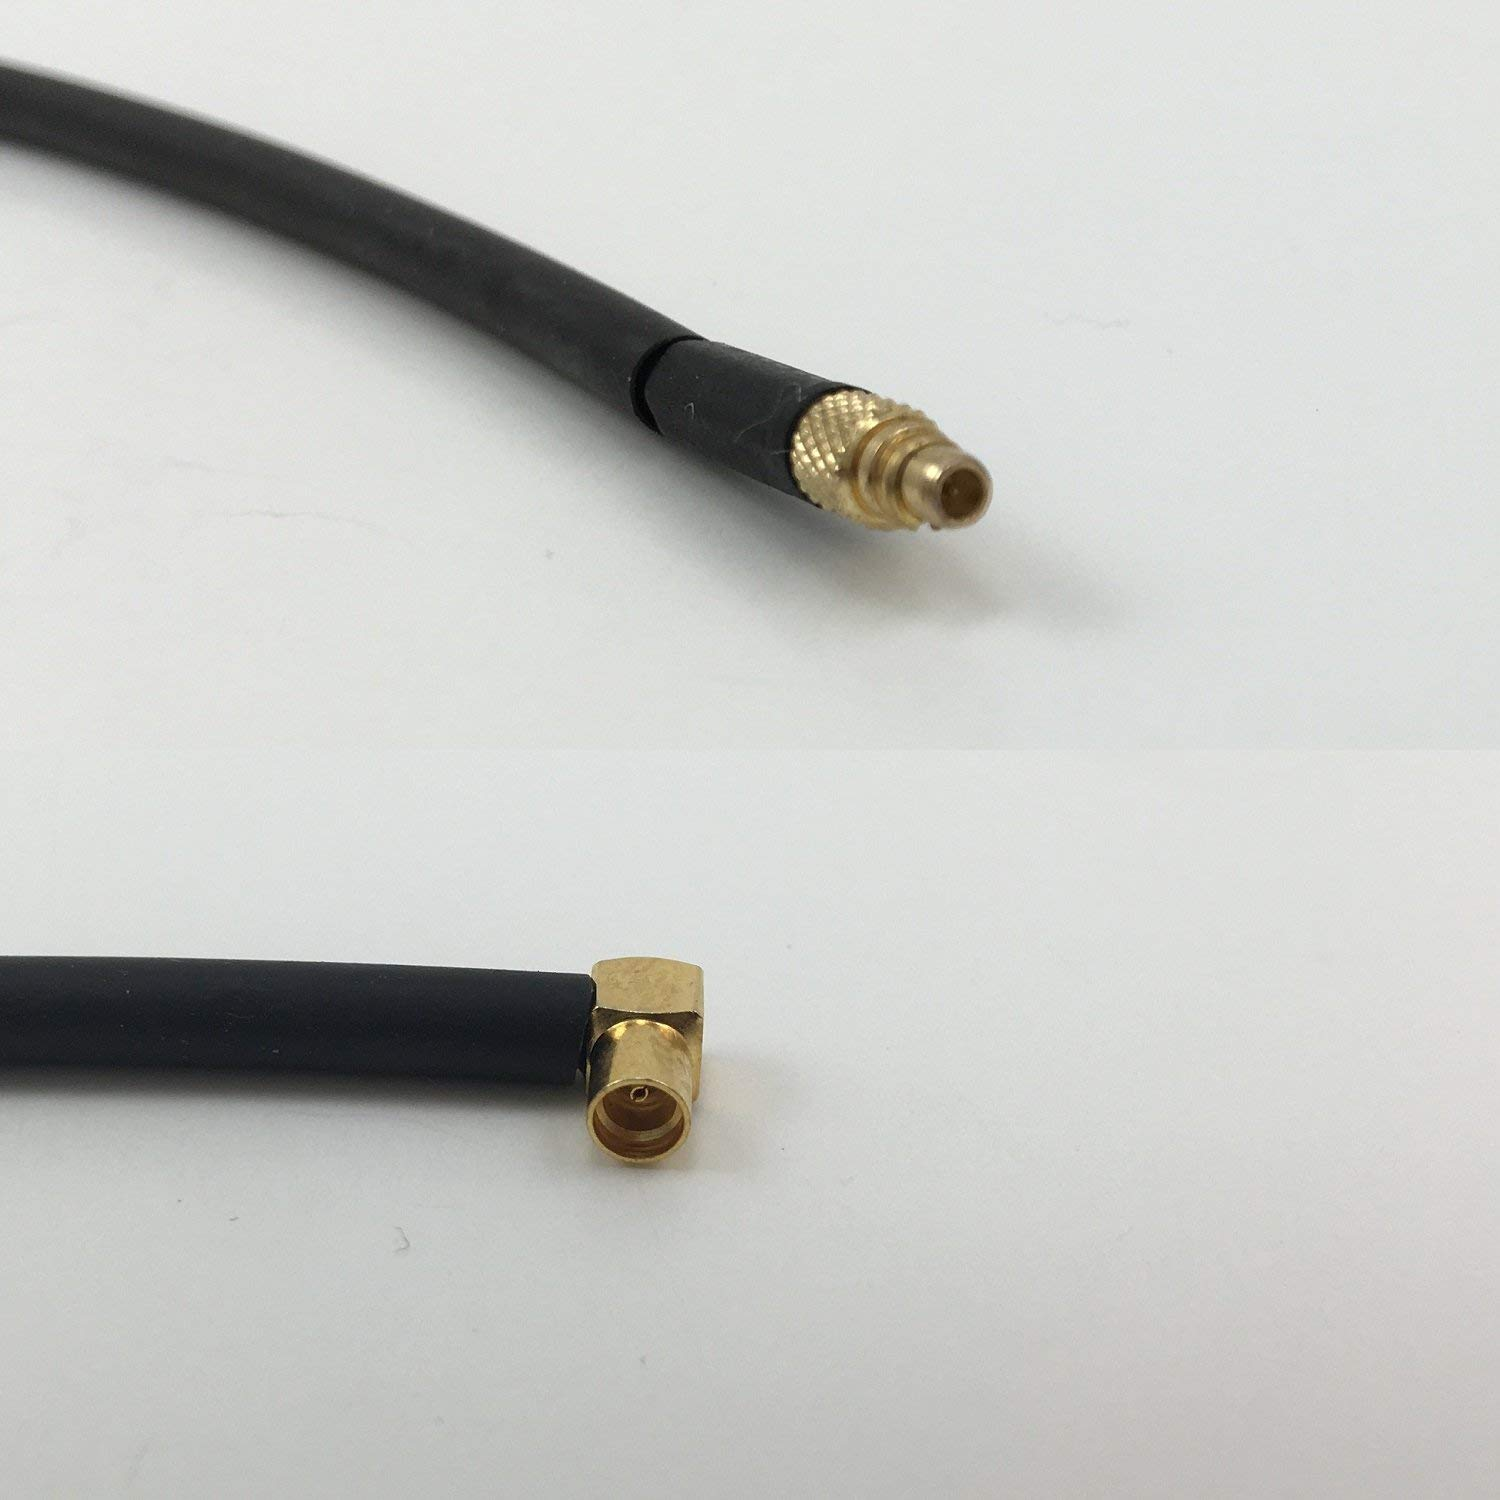 12 inch RGU178 MMCX MALE to MMCX FEMALE ANGLE Pigtail Jumper RF coaxial cable 50ohm High Quality Quick USA Shipping